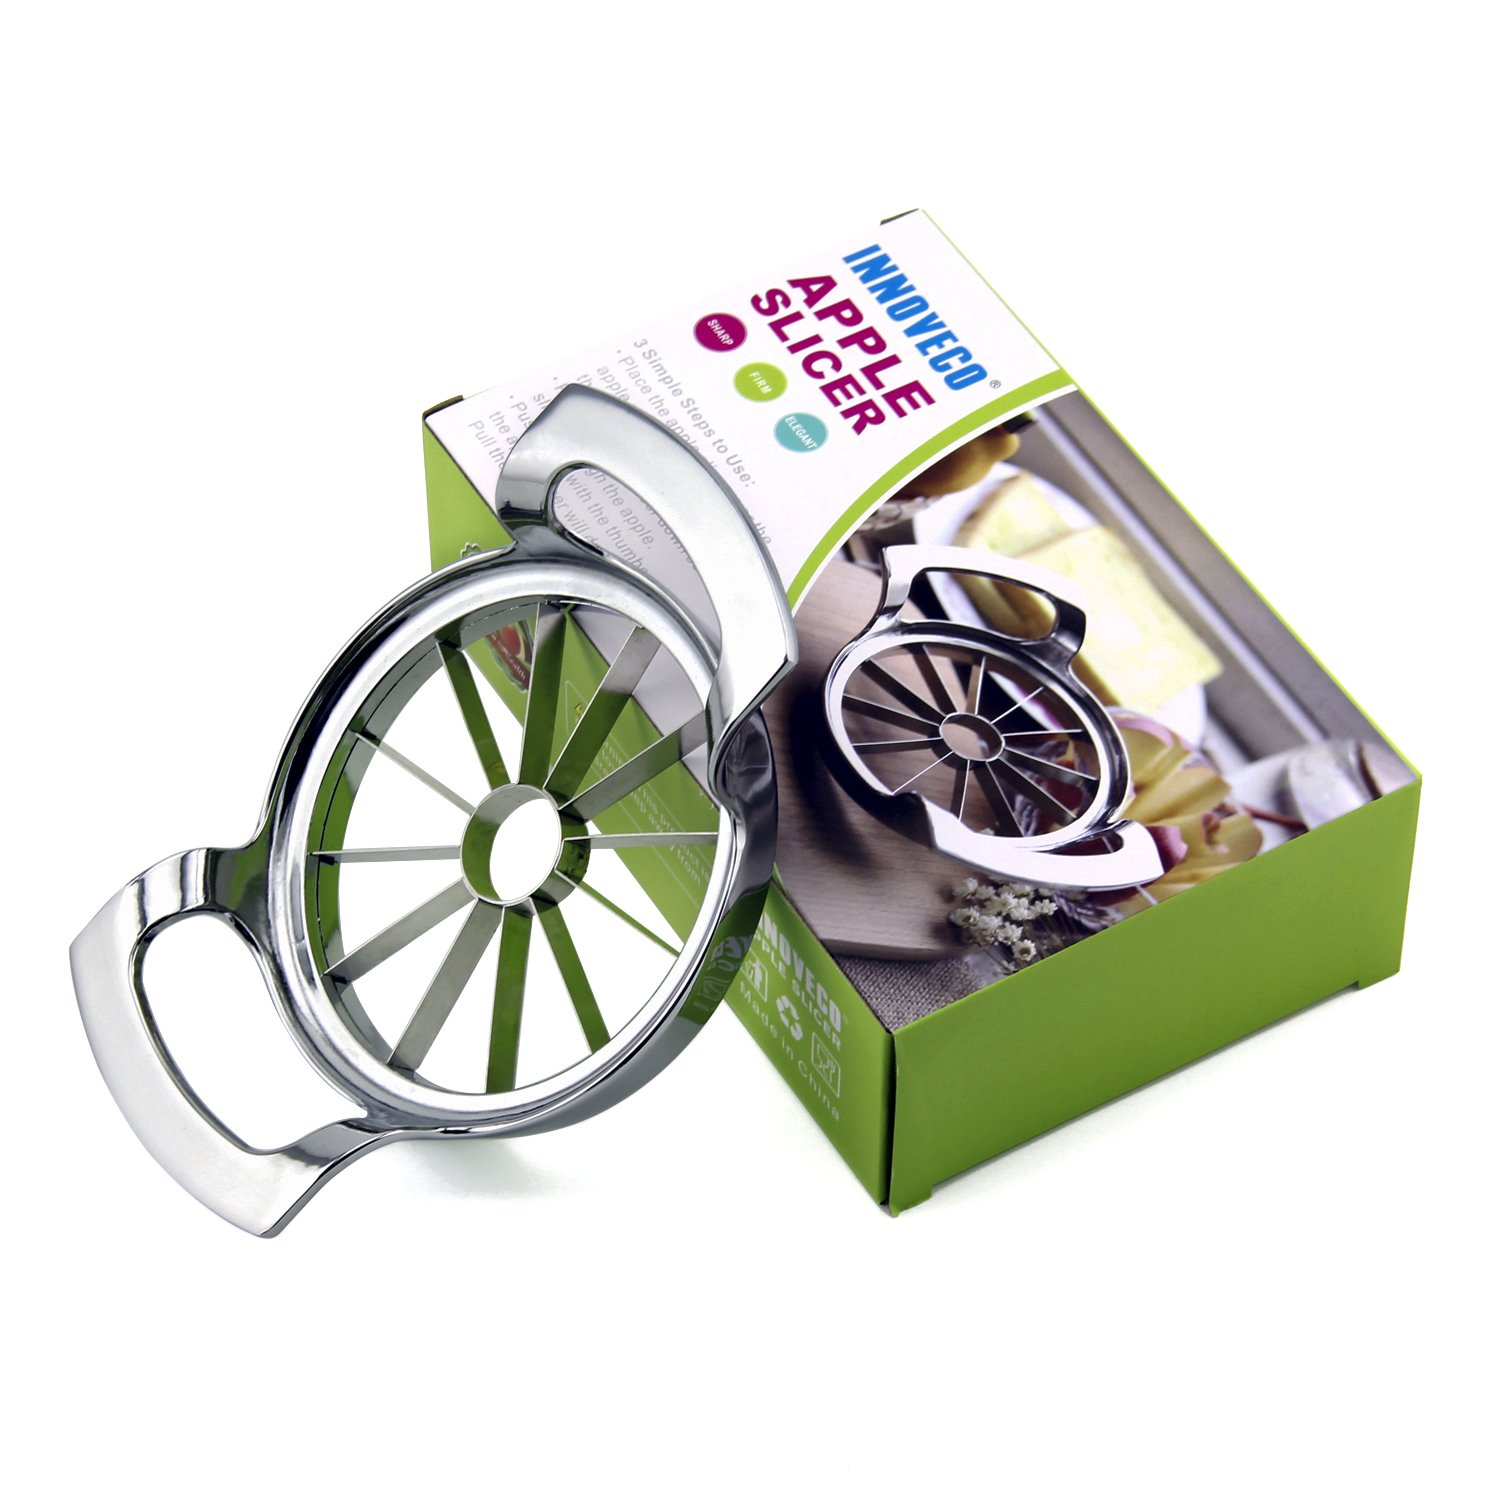 Stainless Steel Apple Slicer Corer Cutter Divider, 12 Blades Food Grade 304, Extra Large Heavy Duty Apple Slicer up to 4 Inch Apples